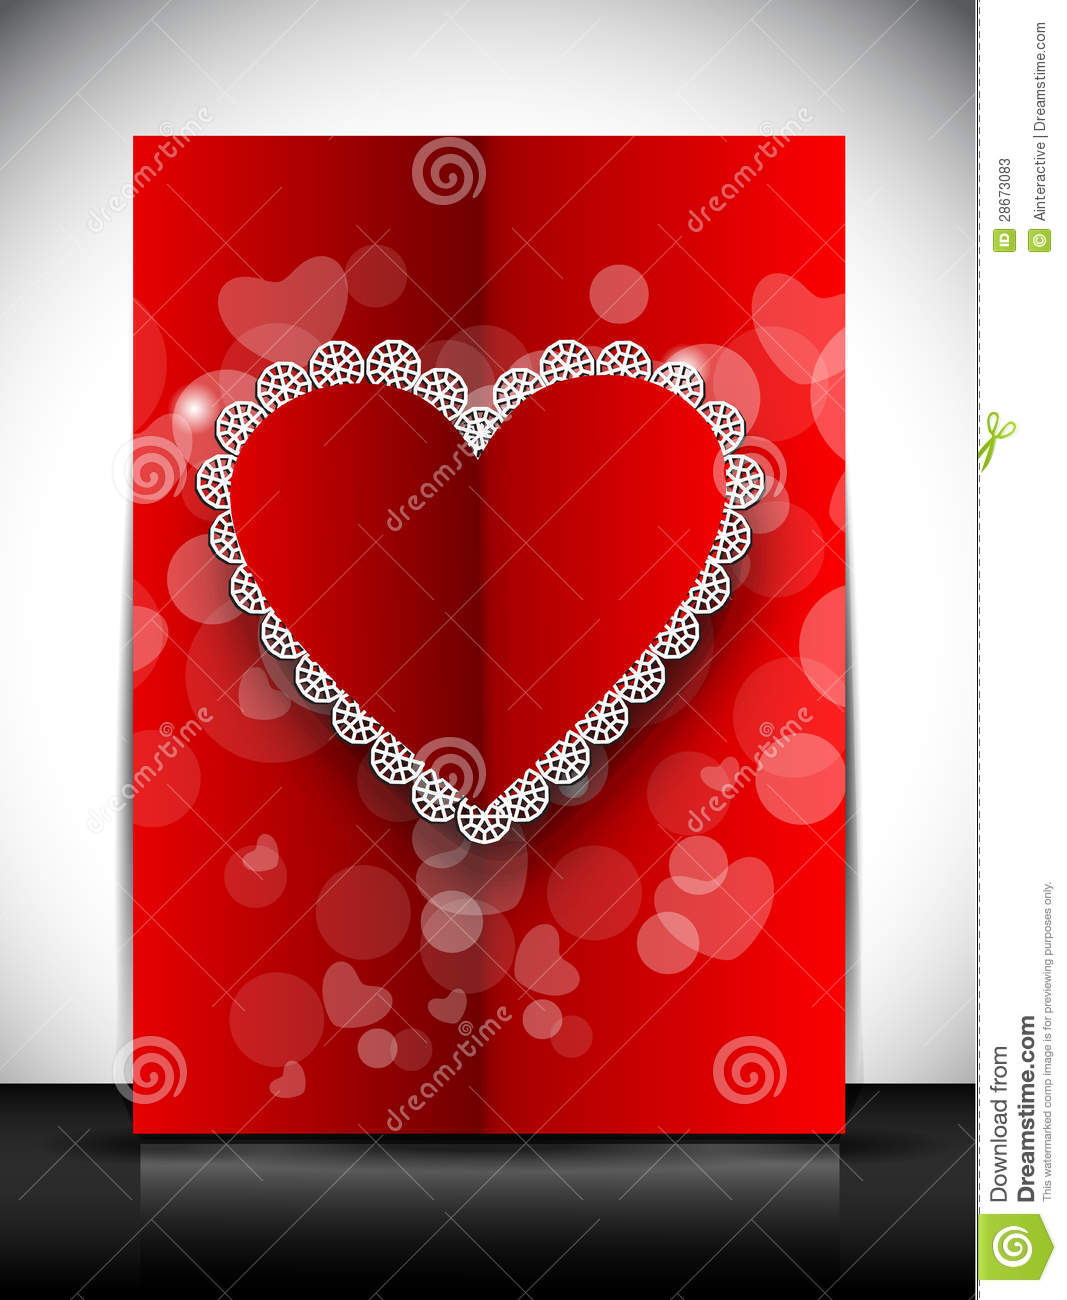 Happy Valentines Day Greeting Card Gift Card Or Background EPS – Images of Valentine Day Greeting Cards